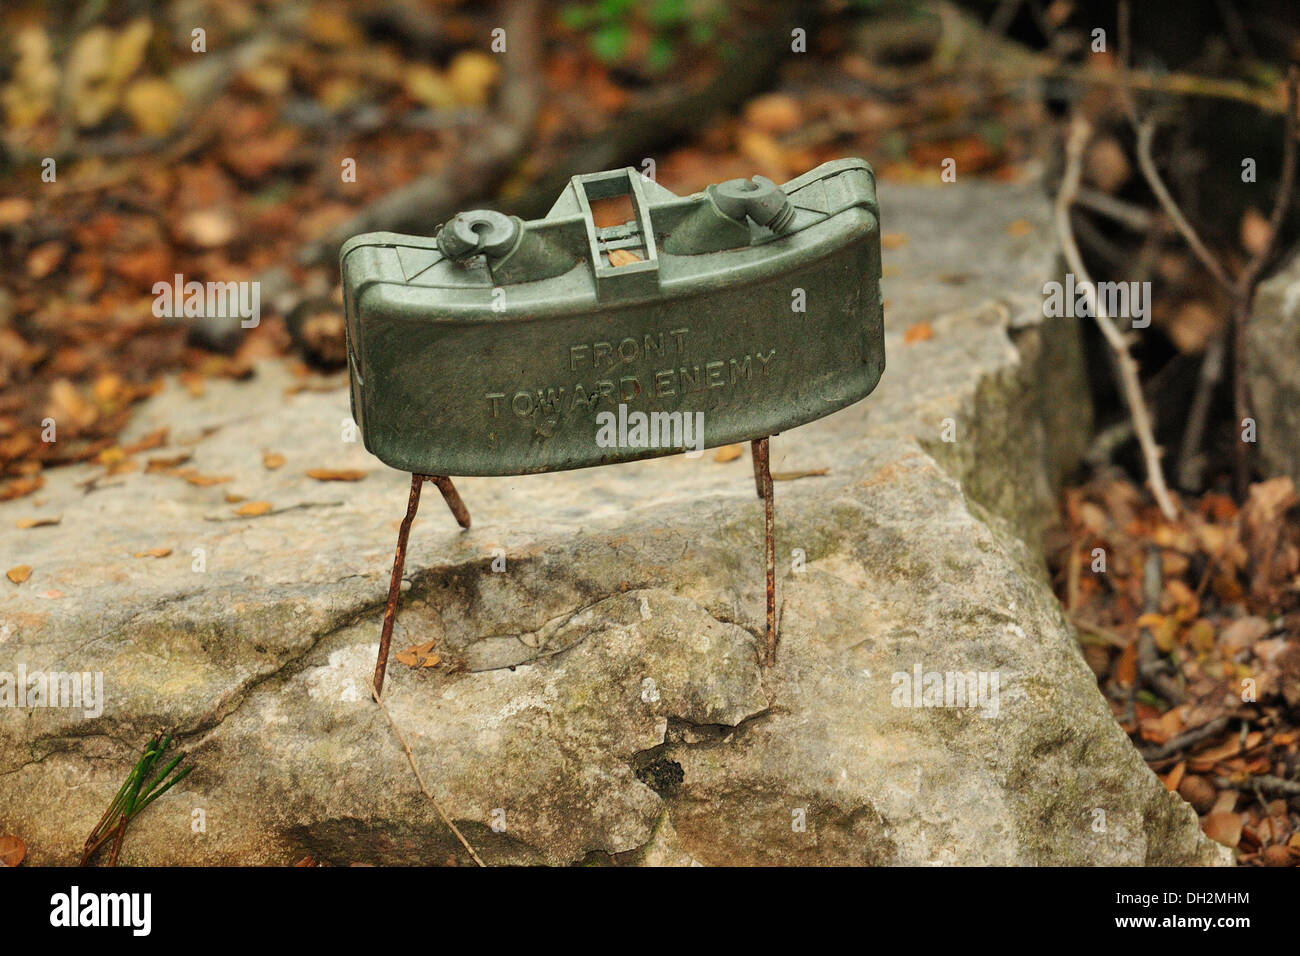 The M18A1 Claymore is a directional anti-personnel mine used by the U.S. military., Mleeta, Hezbollah Museum, South Lebanon. hor - Stock Image